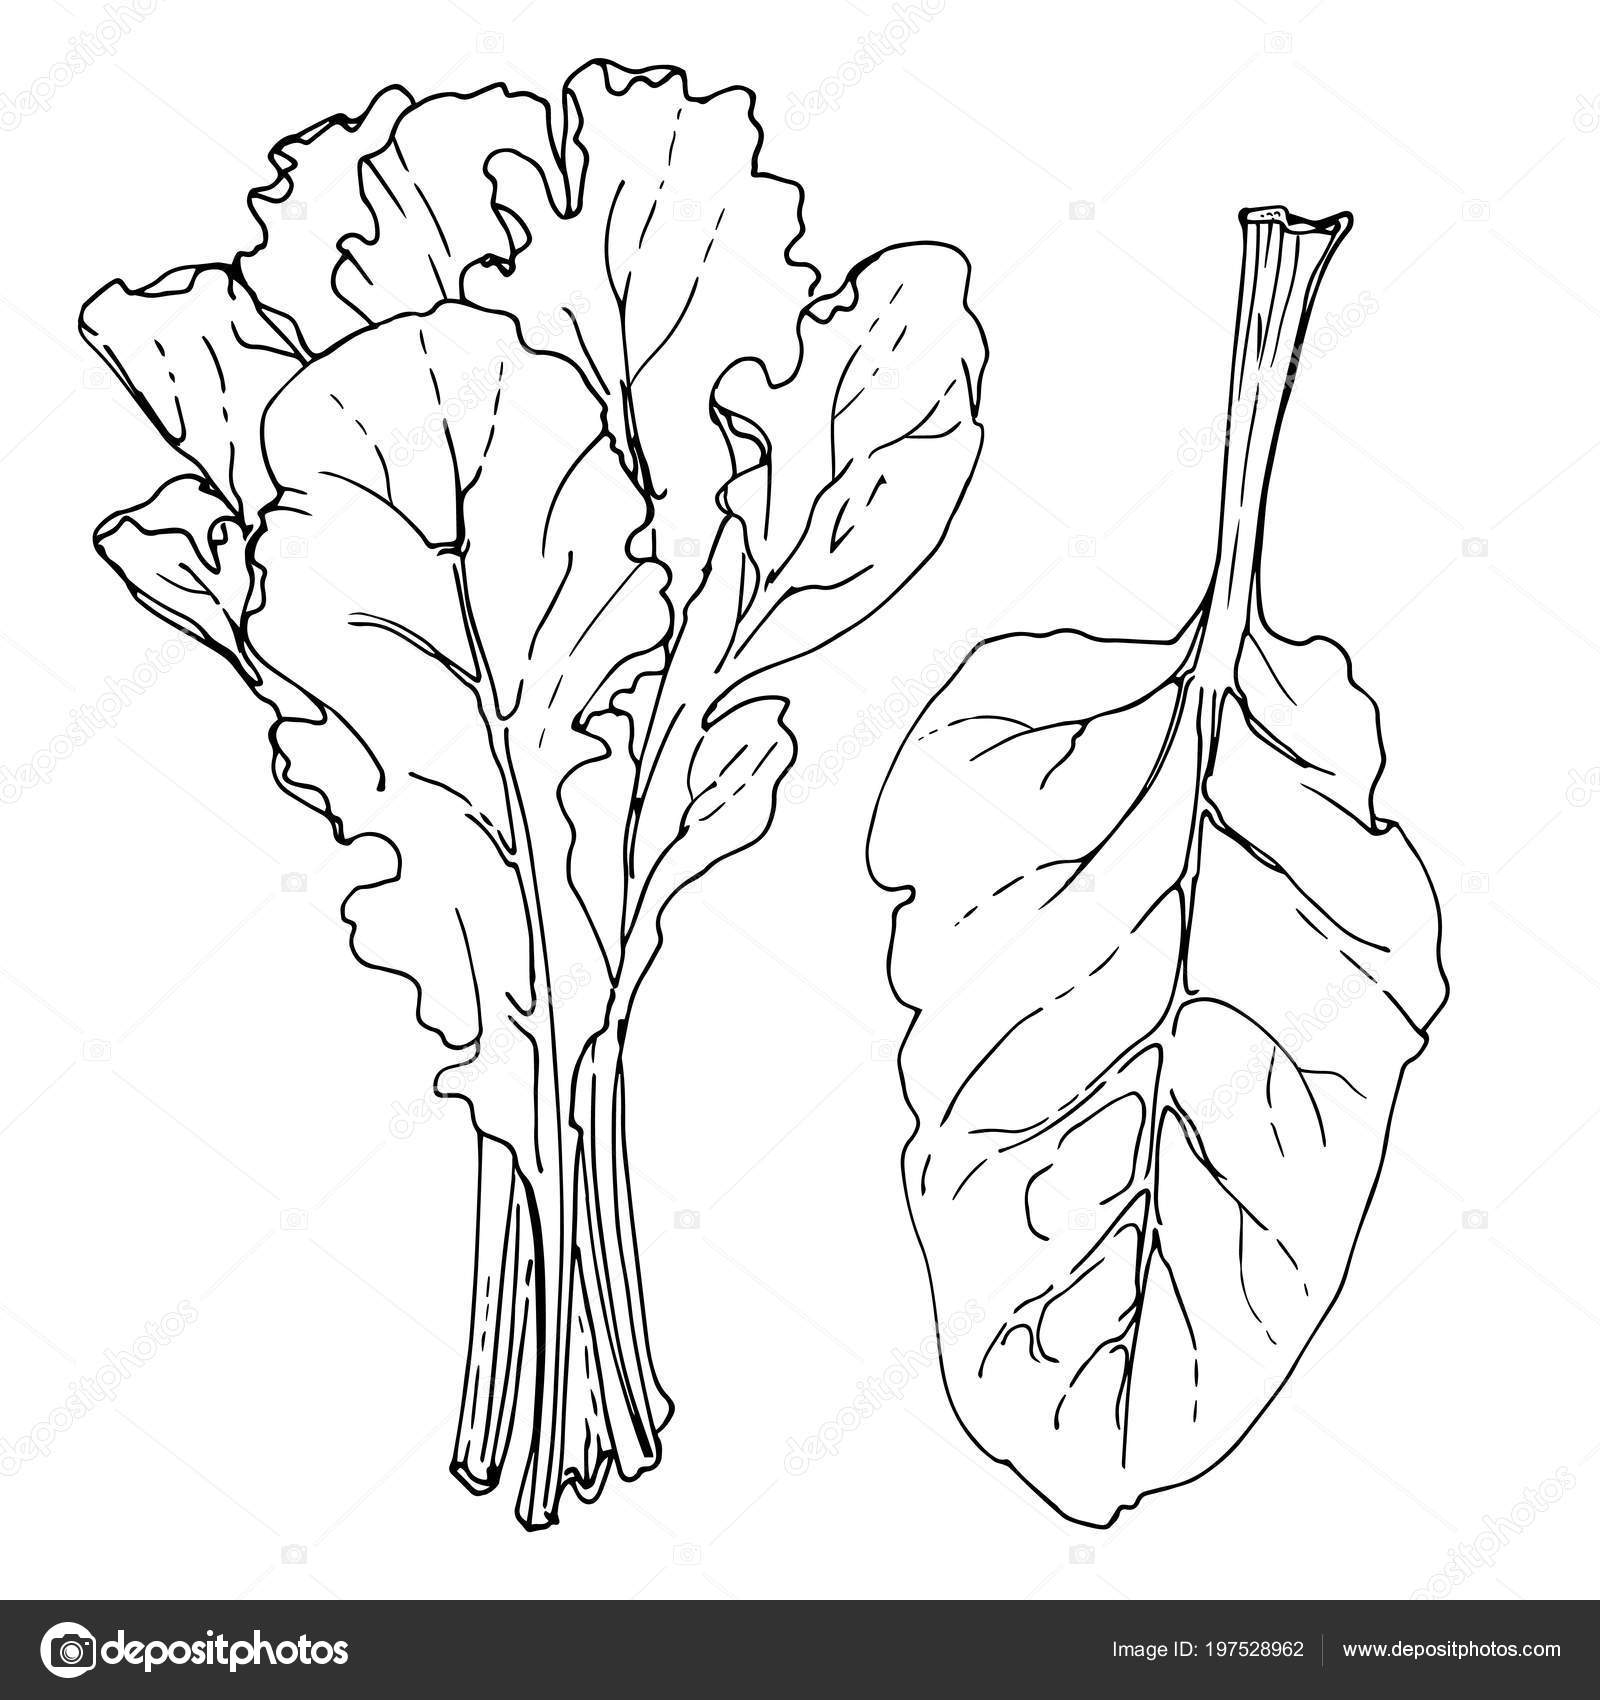 Swiss Chard Vector Images Royalty Free Swiss Chard Vectors Page 2 Depositphotos